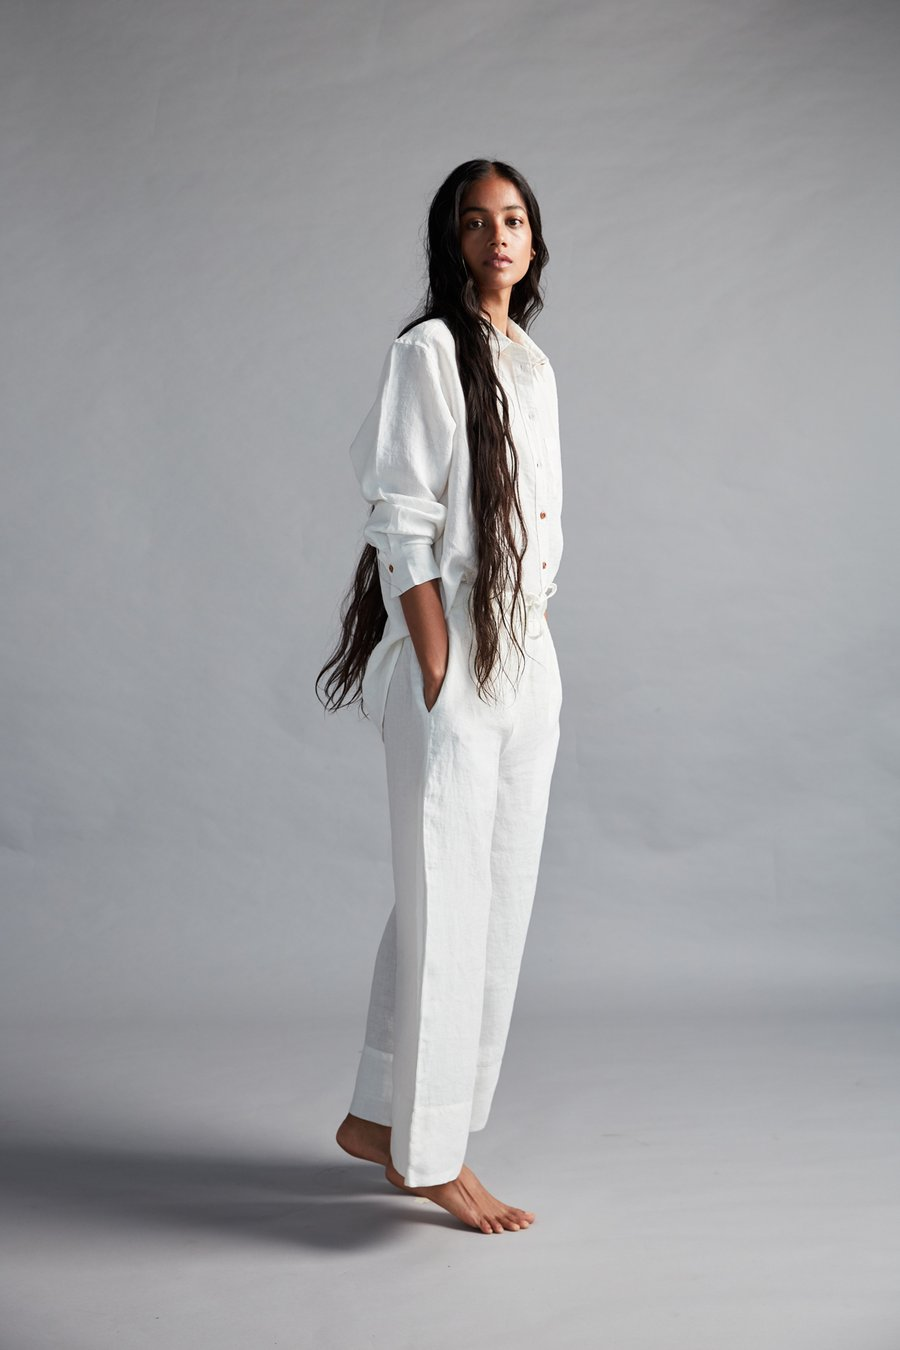 After spending over a year in pyjamas, we're not quite ready to go back to trousers yet. Enter pure linen pyjama pants, smart enough to wear outside and comfortable enough to sit with your feet up. 100% linen, European flax — a natural fibre Relaxed Waist With Elastic & Drawstrings Side Pockets Back Yoke Oversized Hem Taj (Ivory White) Colour Pair it with our Oversized Linen Shirt or our Linen Shirt Dress